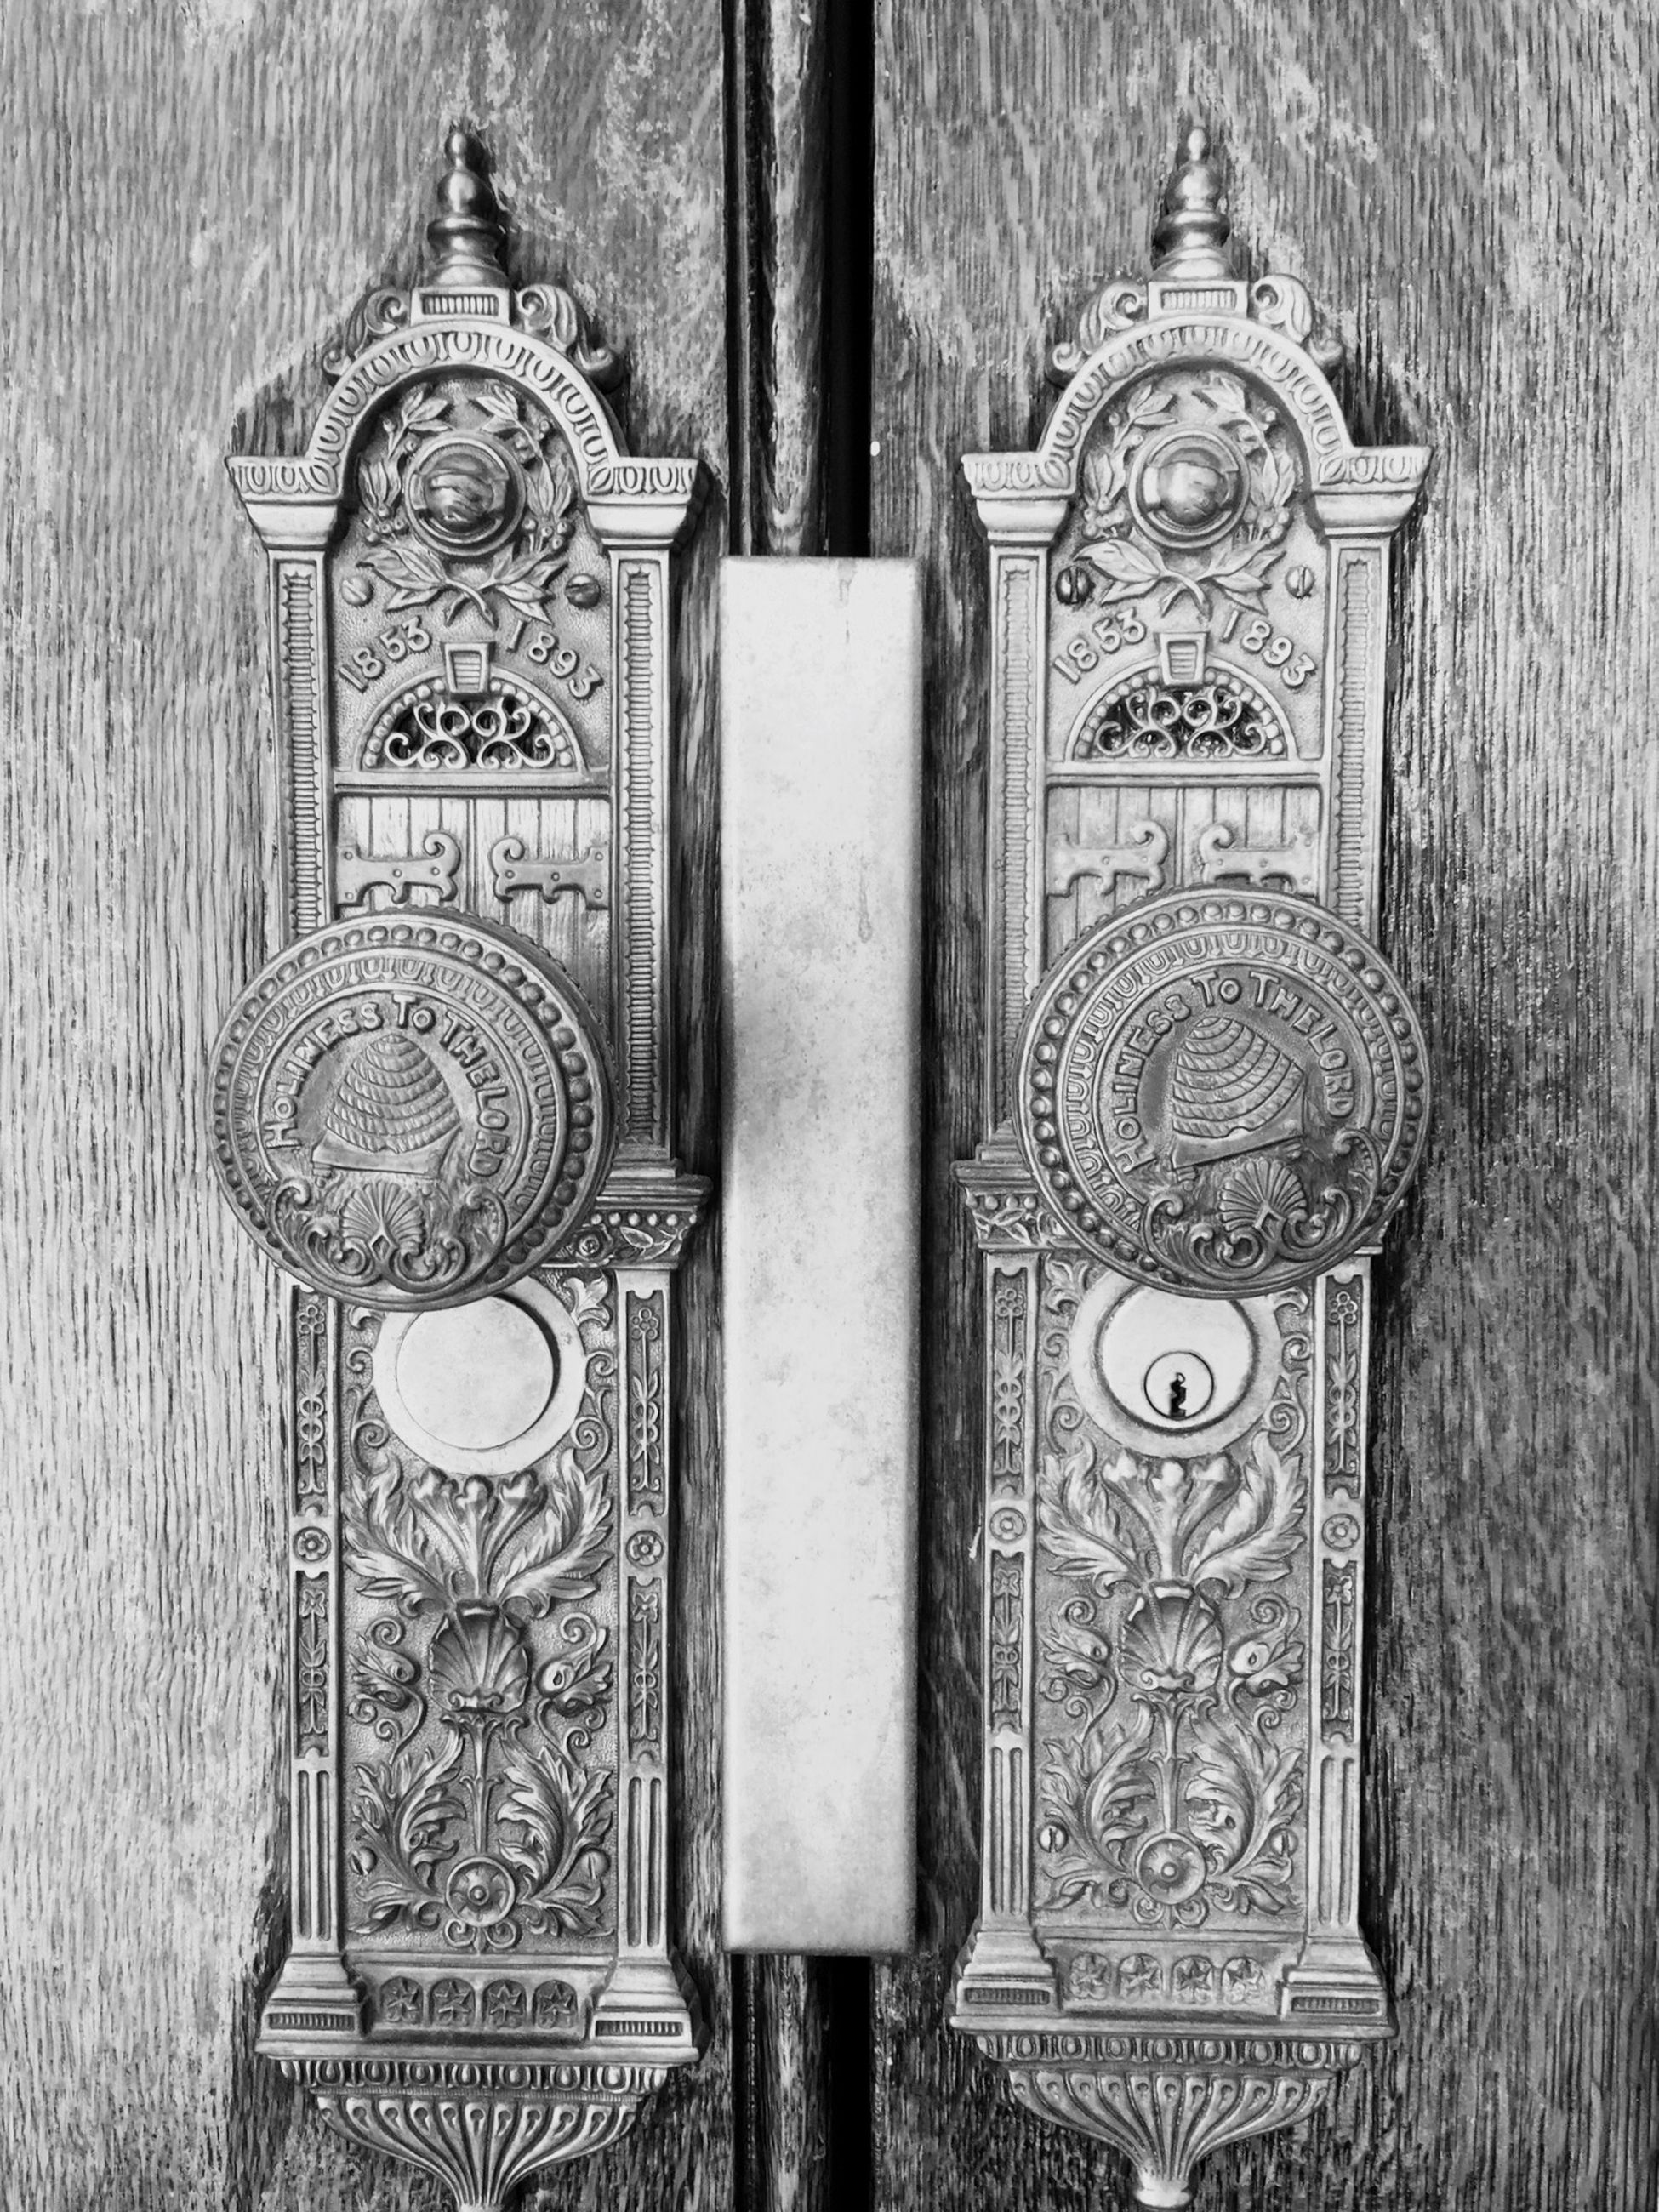 door, wood - material, religion, old, wooden, close-up, closed, spirituality, metal, ornate, old-fashioned, church, protection, place of worship, wall - building feature, wood, built structure, security, cross